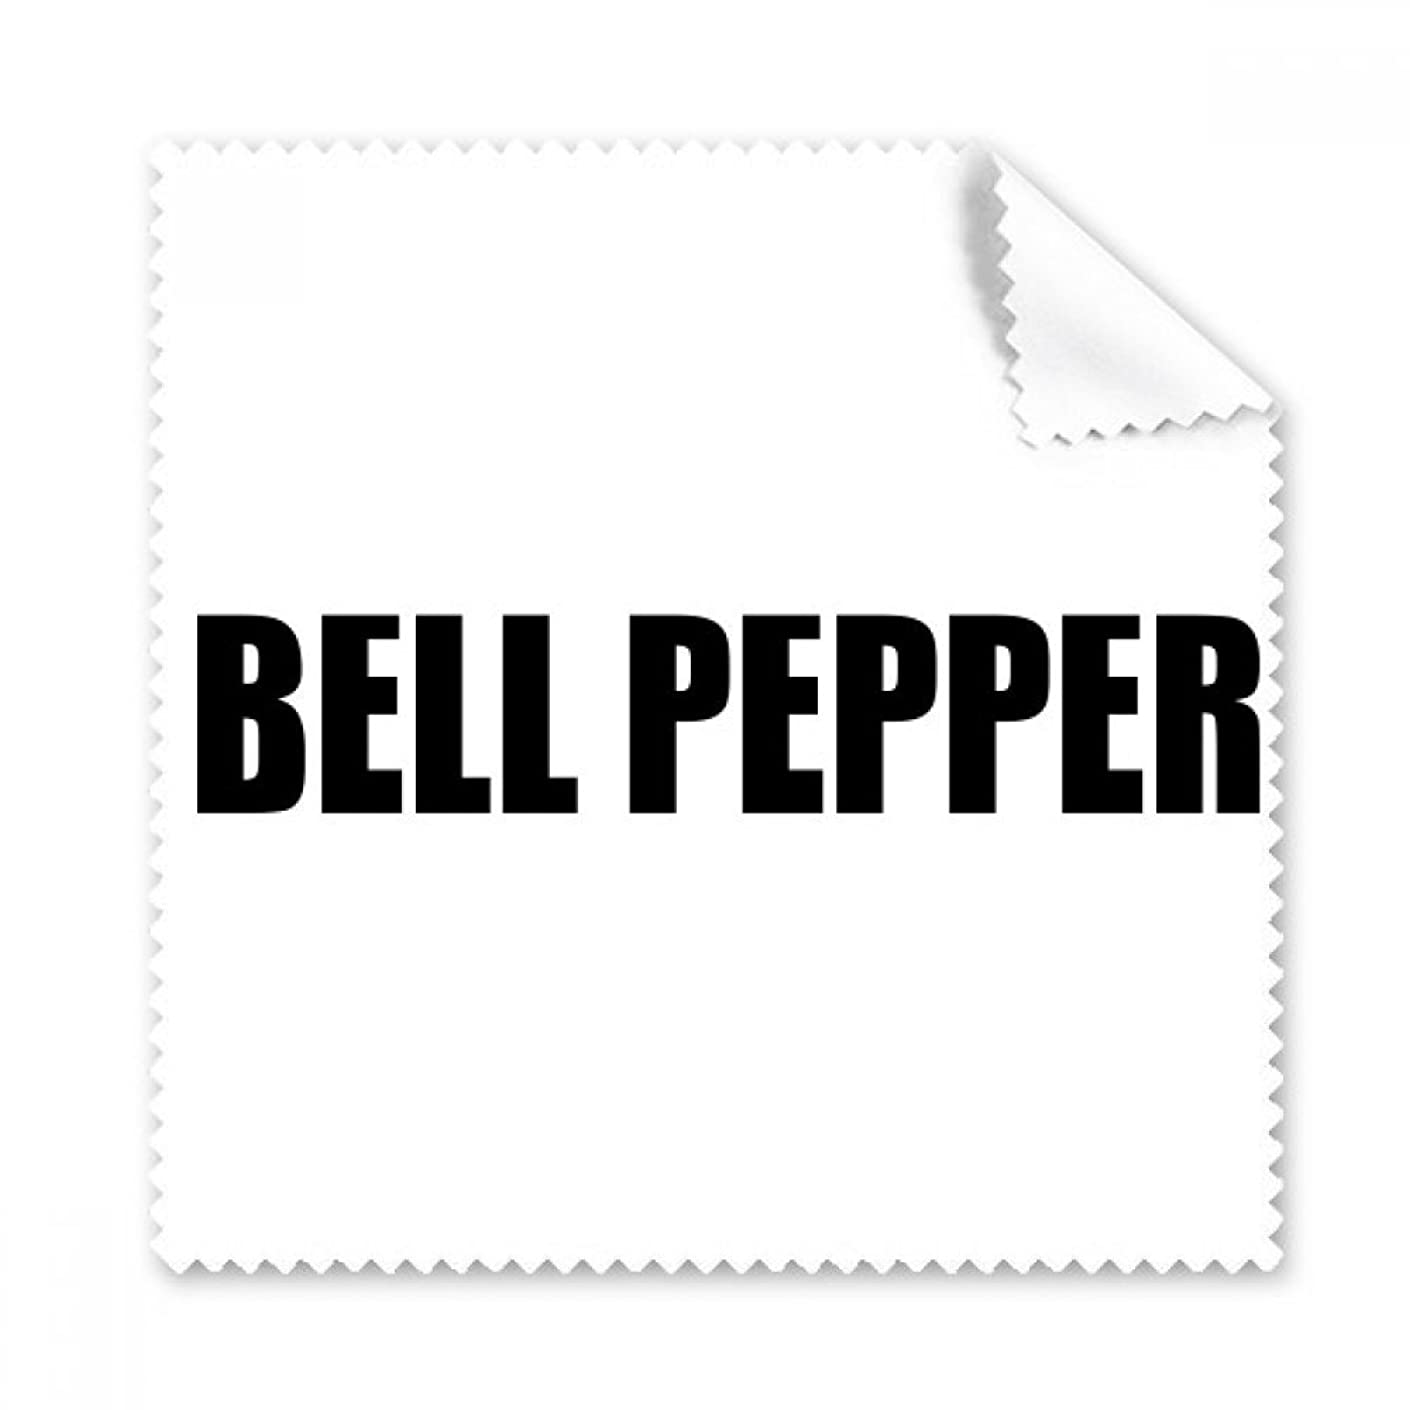 Bell Pepper Vegetable Name Foods Glasses Cloth Cleaning Cloth Phone Screen Cleaner 5pcs Gift